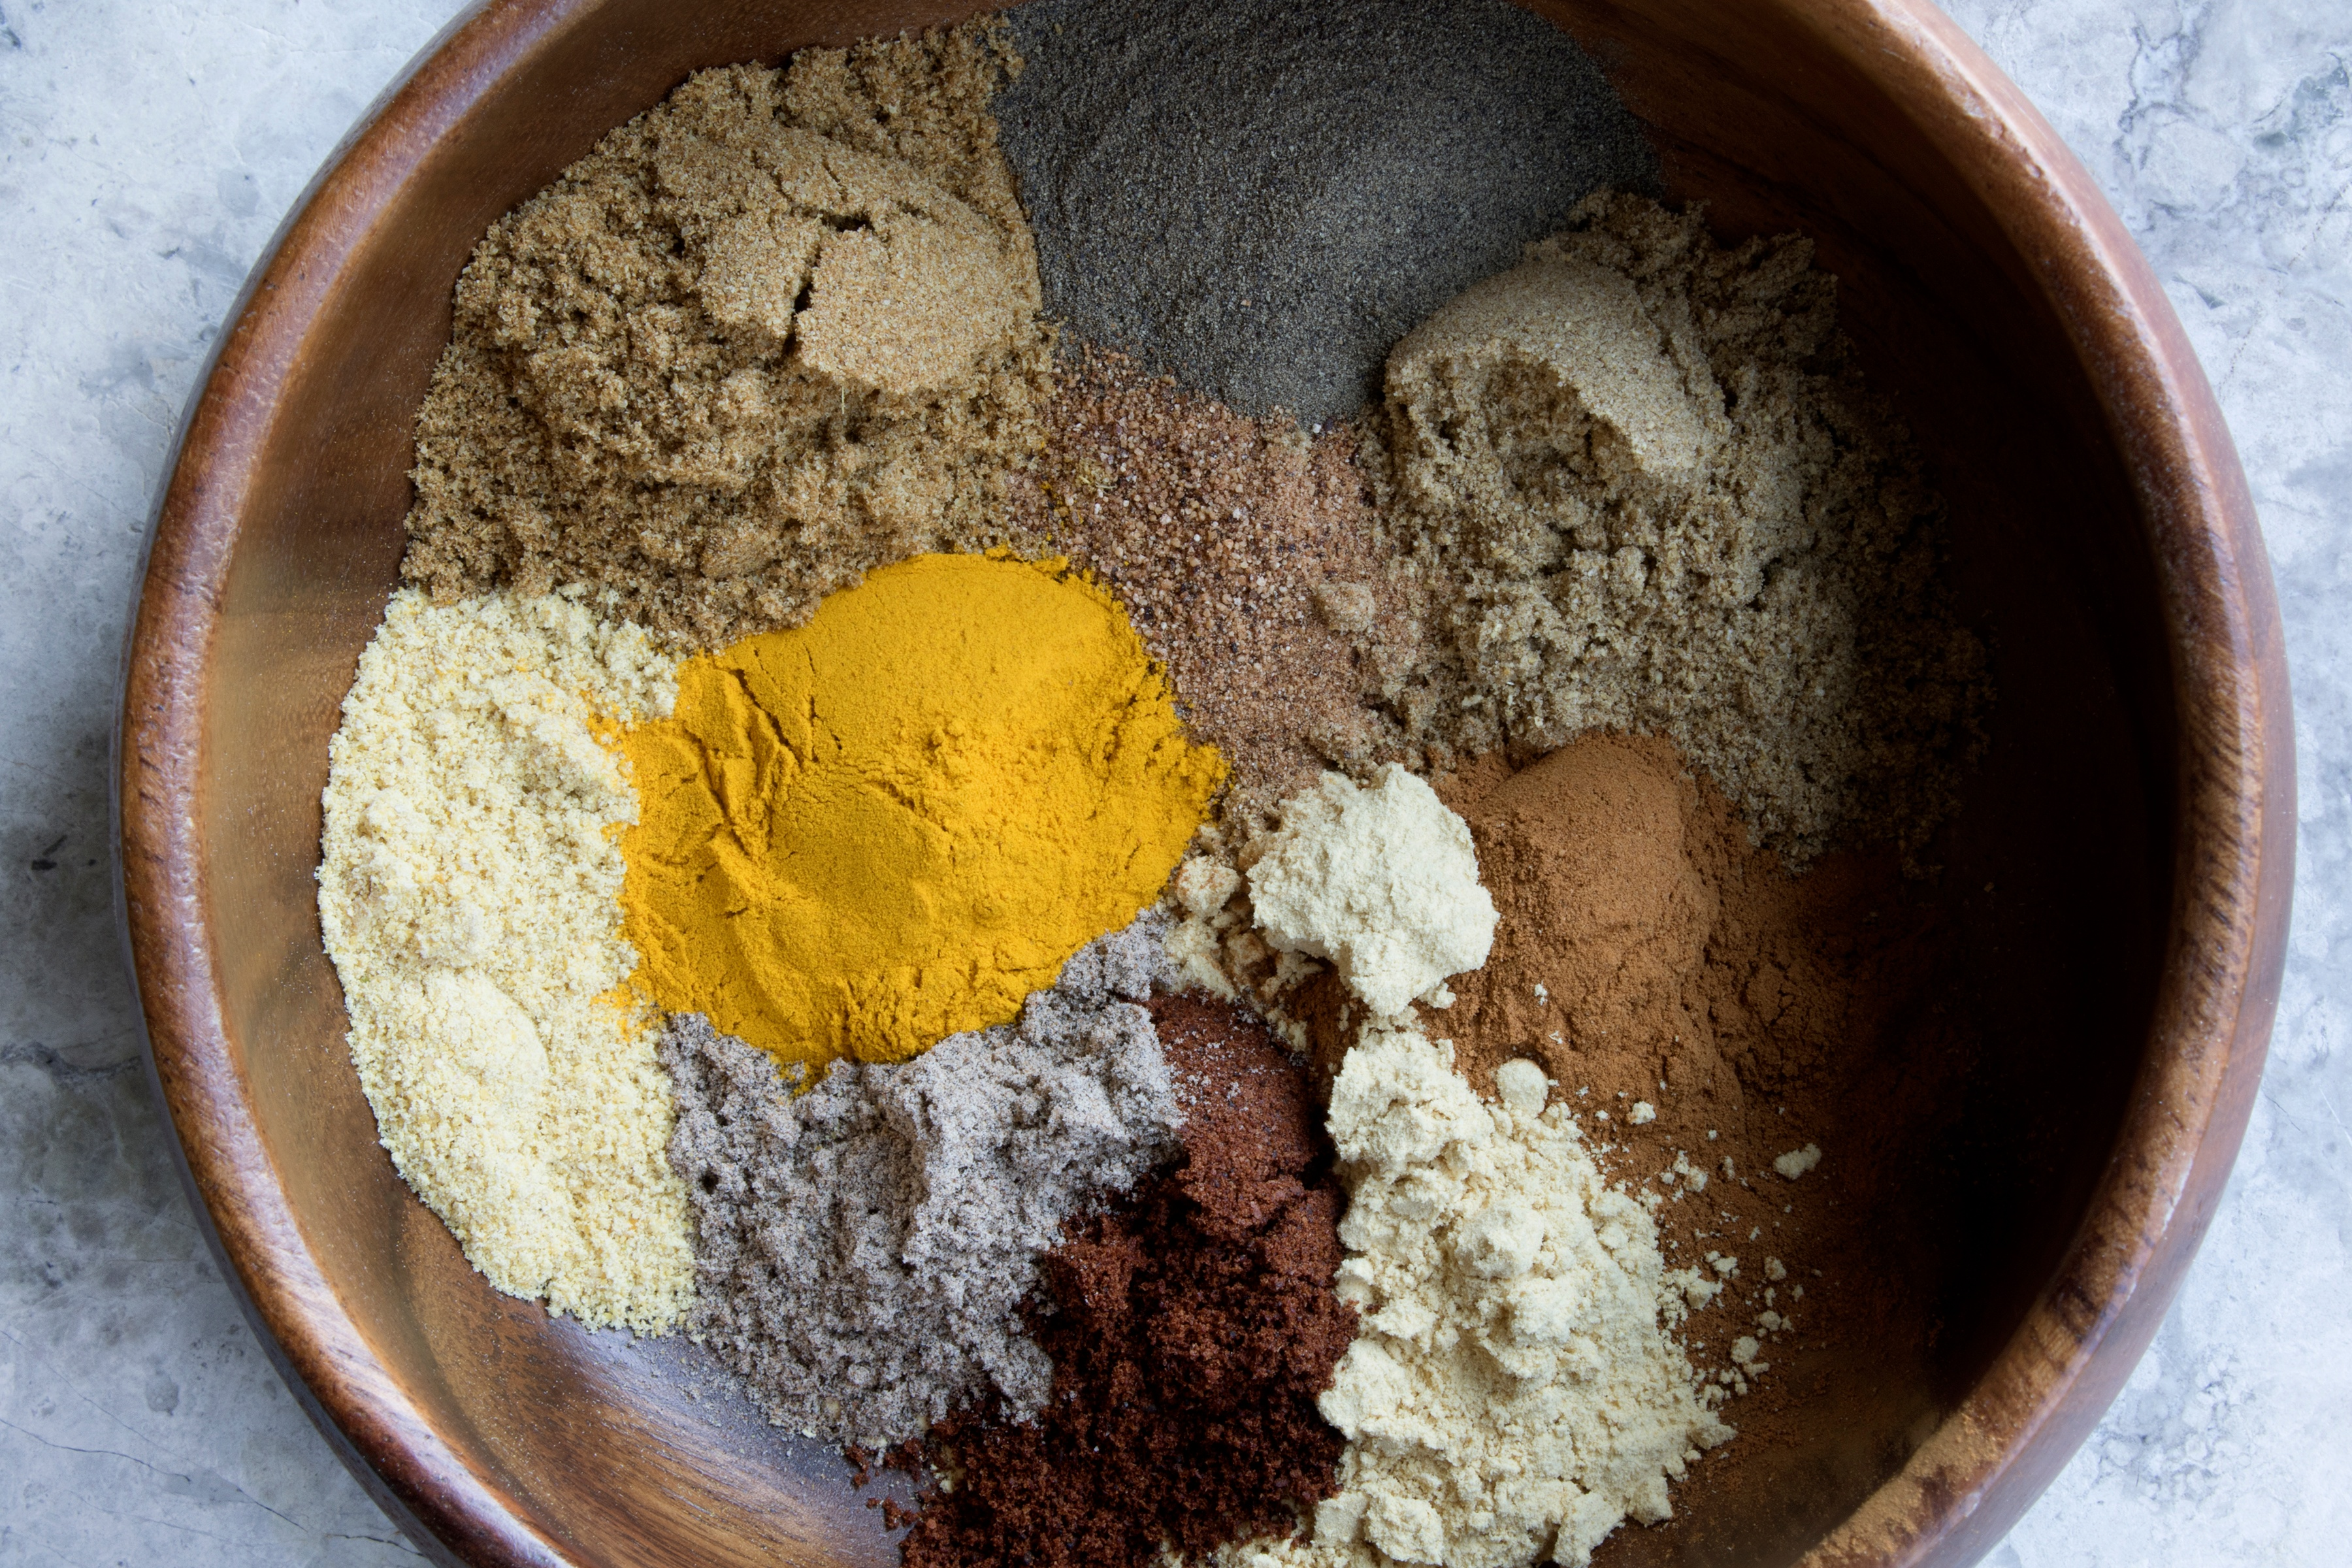 Wooden bowl filled with vibrant colored powdered herbs and spices